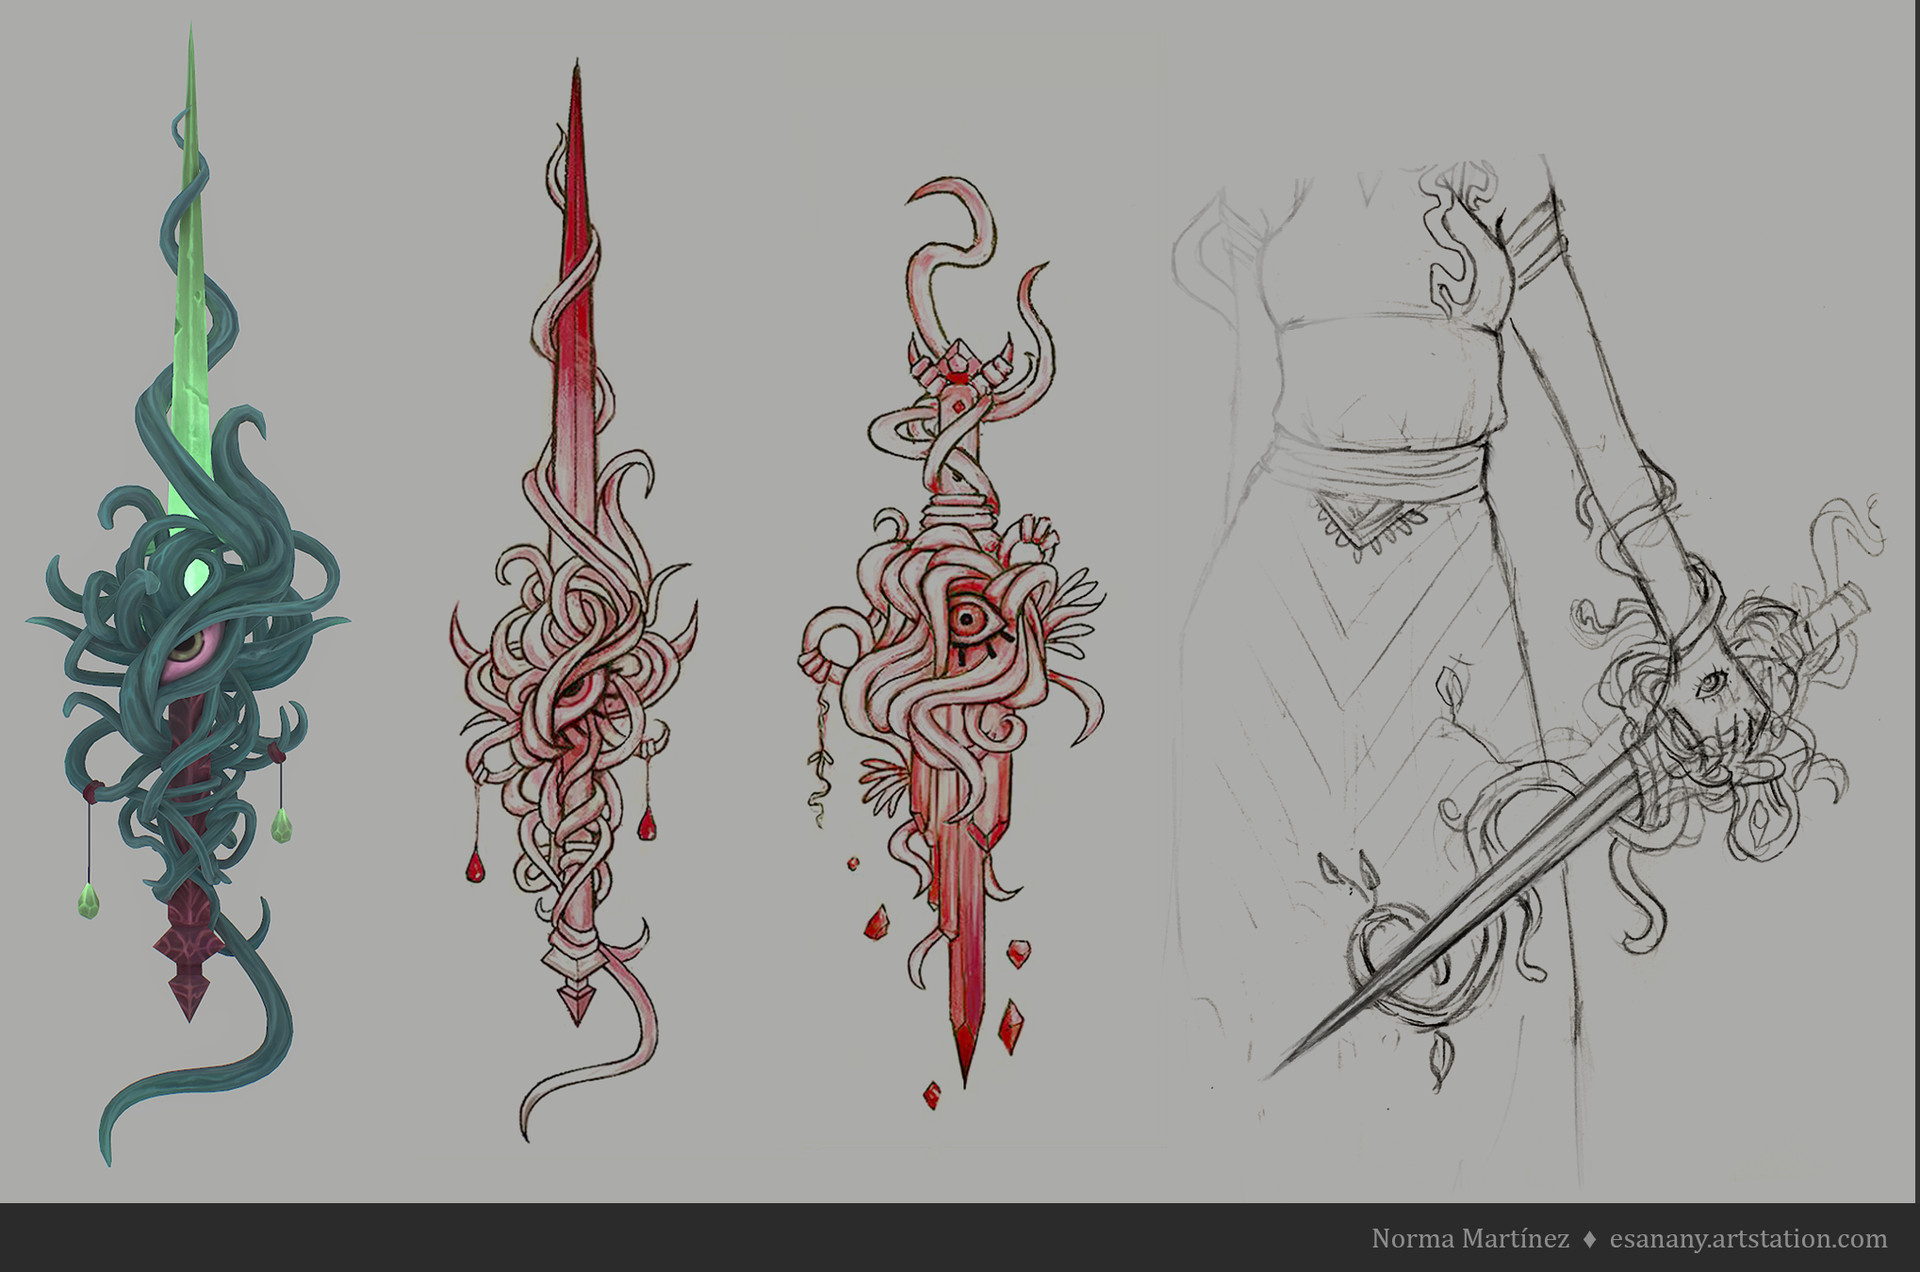 diffuse only / 3D coat + sketches + function doodle